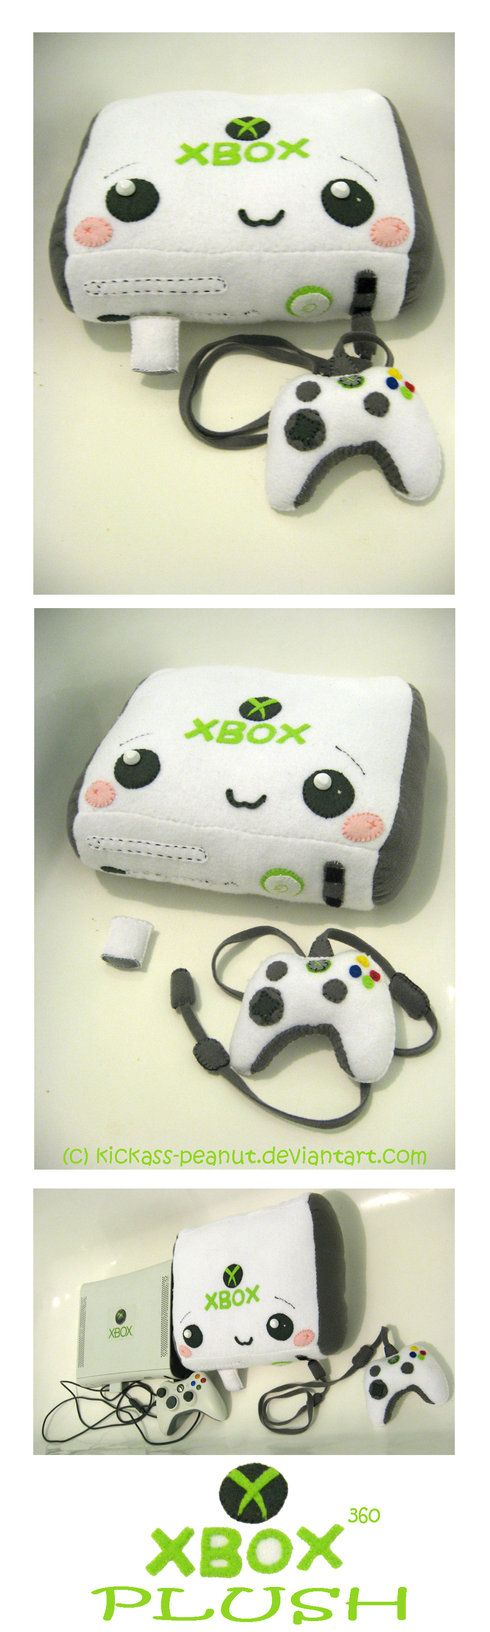 Uhmm.. this is amazing. Does someone want to buy me this? I'll love you forever. <3